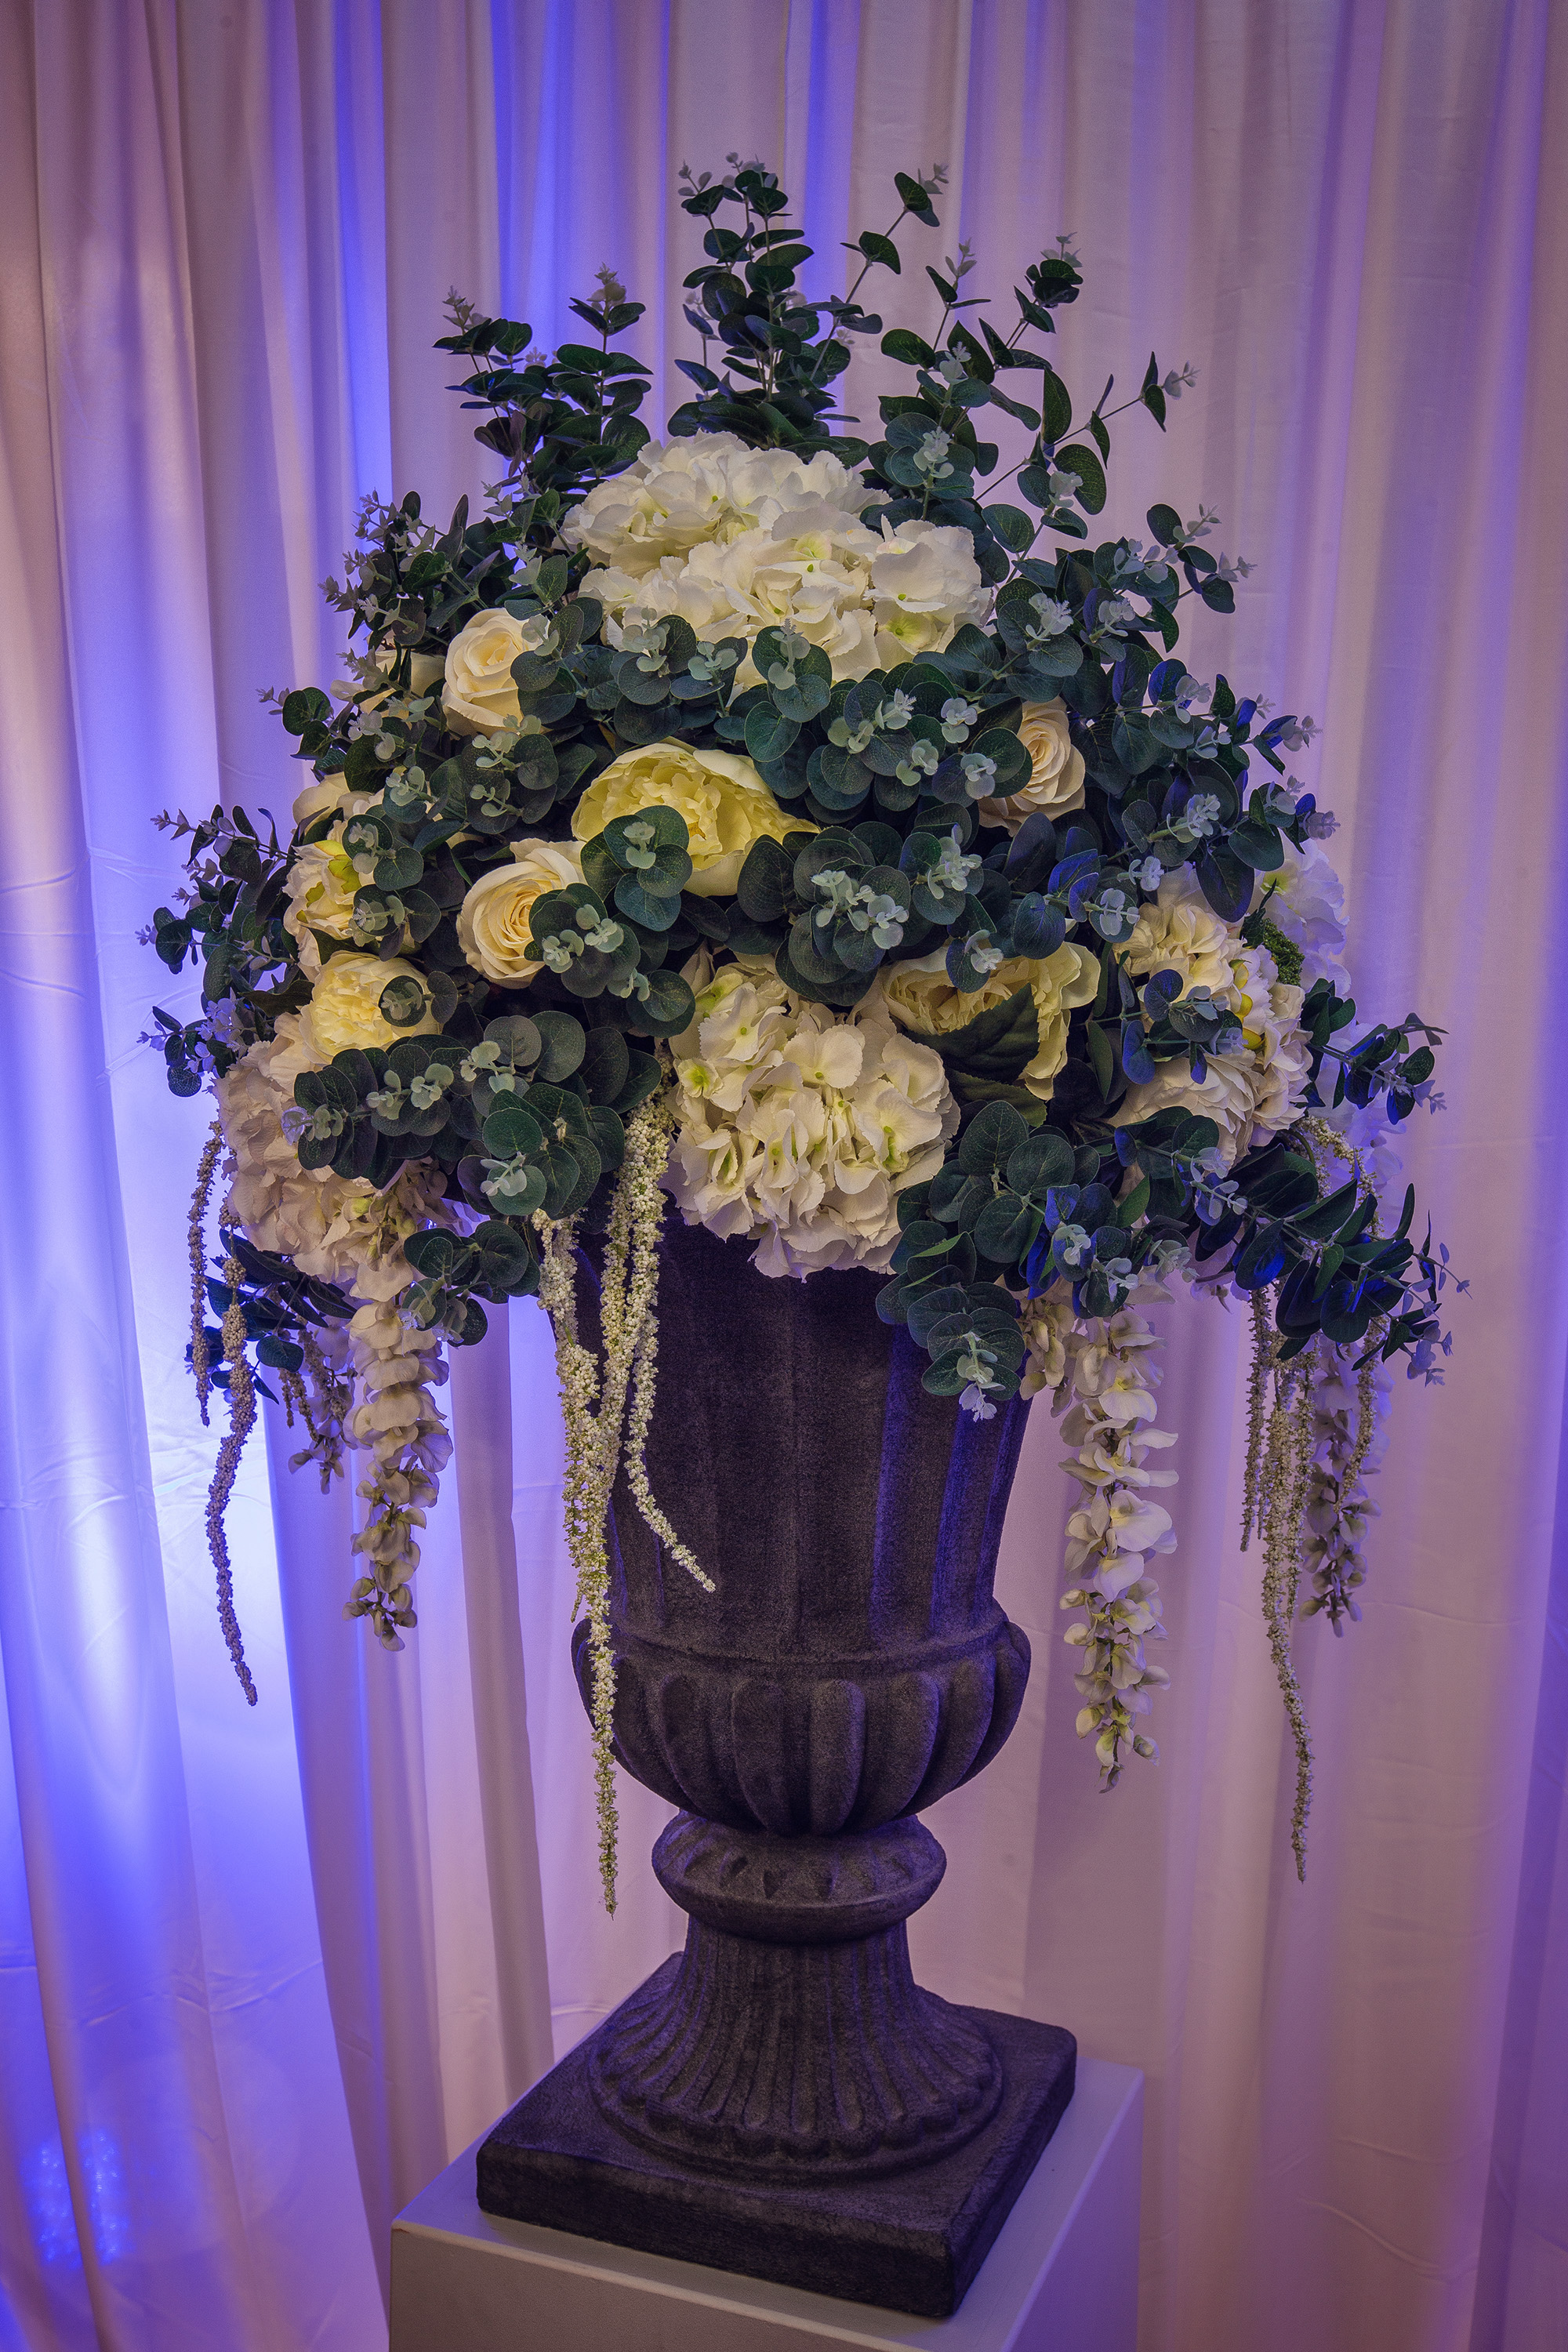 THE-WEDDING-ROOM-ACCESSORIES-AND-FINISHING-TOUCHES-10.JPG